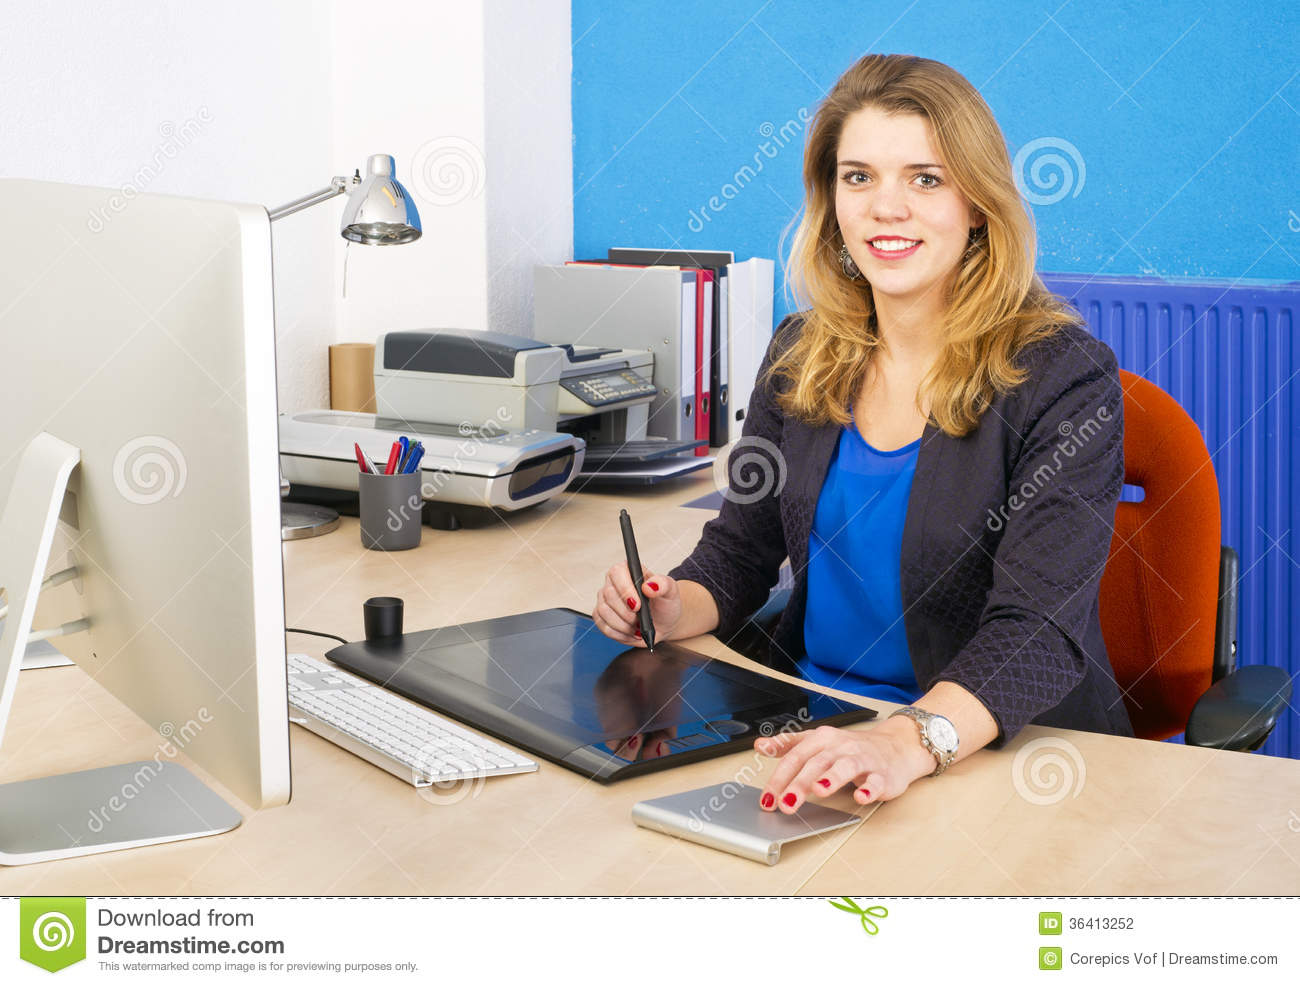 Female Graphic Designer